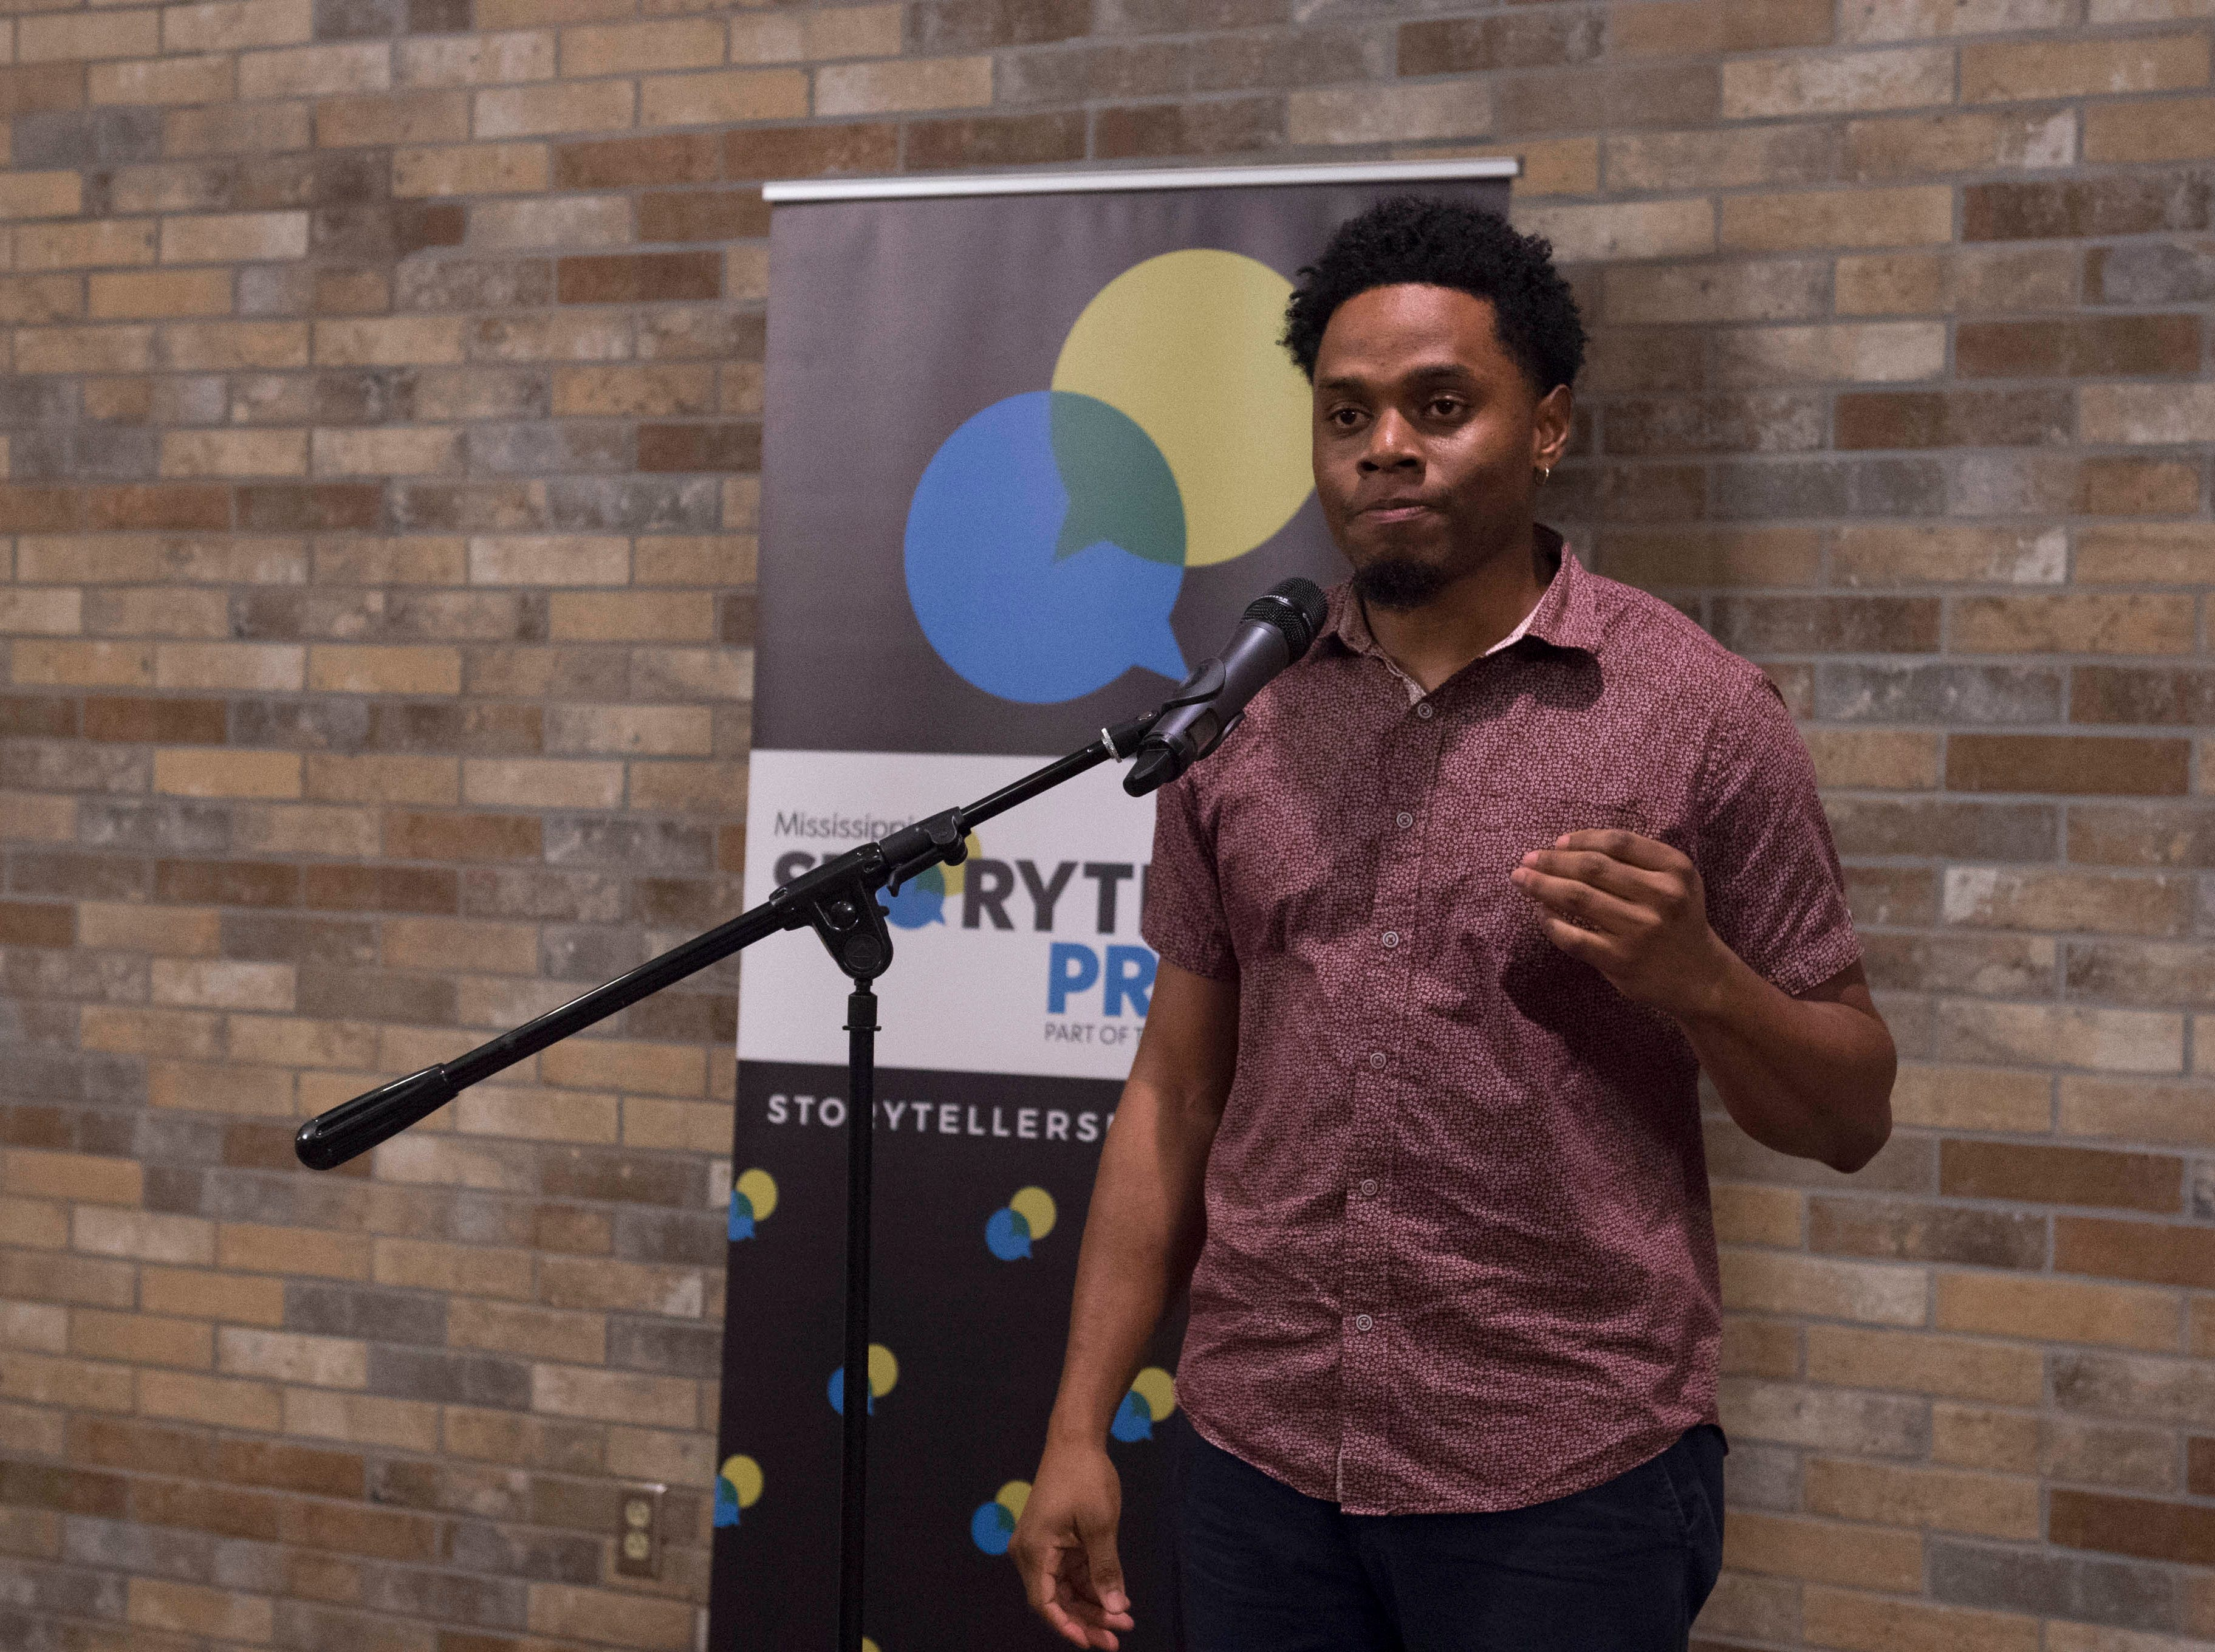 Mississippi Storytellers: Growing Up speaker Anthony McDougle shares how being stuck in the middle of nowhere and a little tough love can change your life. Tuesday, Sept. 2018.